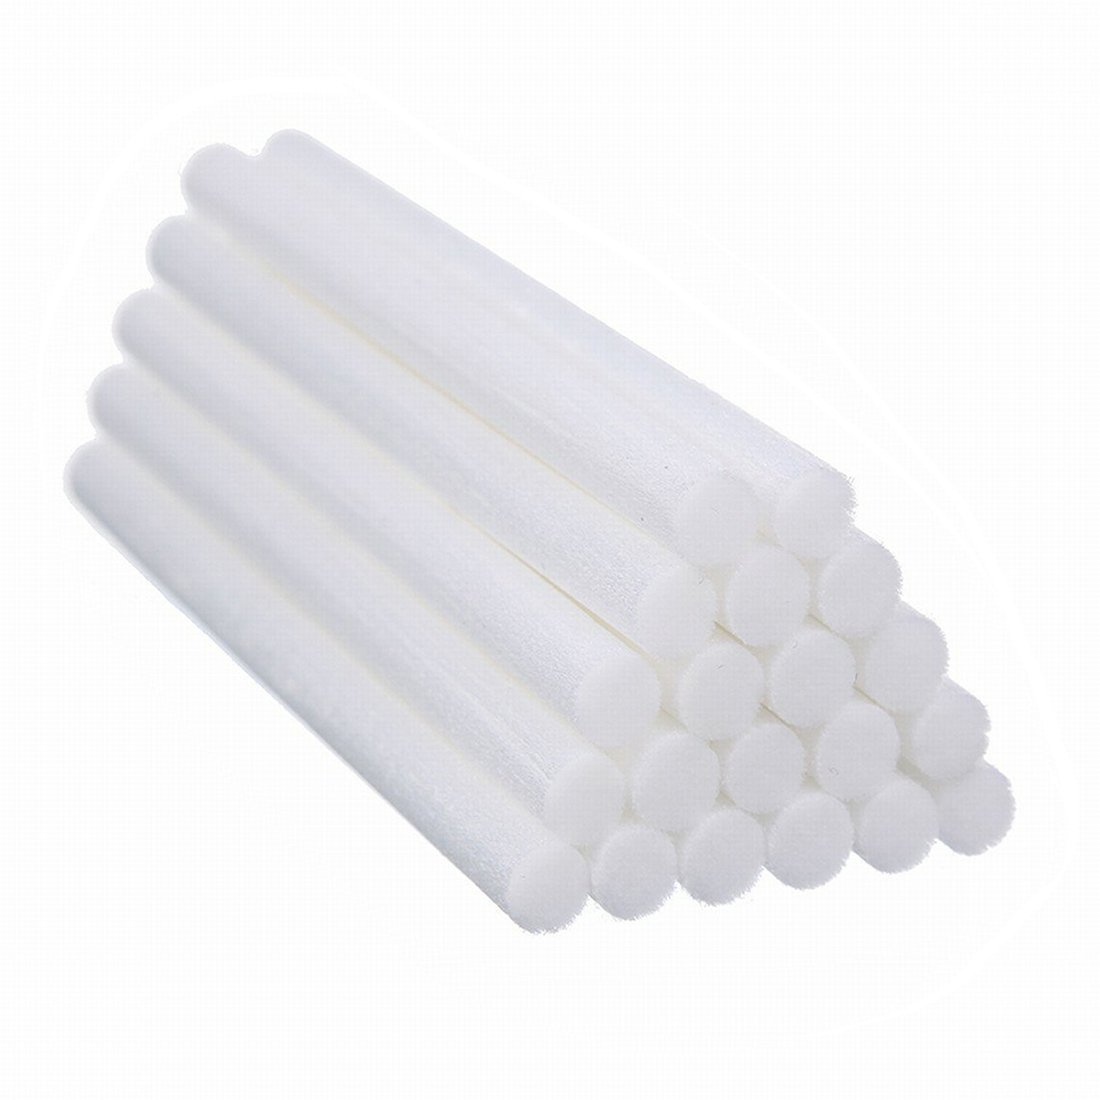 AOLODA Humidifier Filters Sticks, 4.5'' Cotton Sticks Wicks Replacements for Mini Cactus Humidifiers (20 PCS)